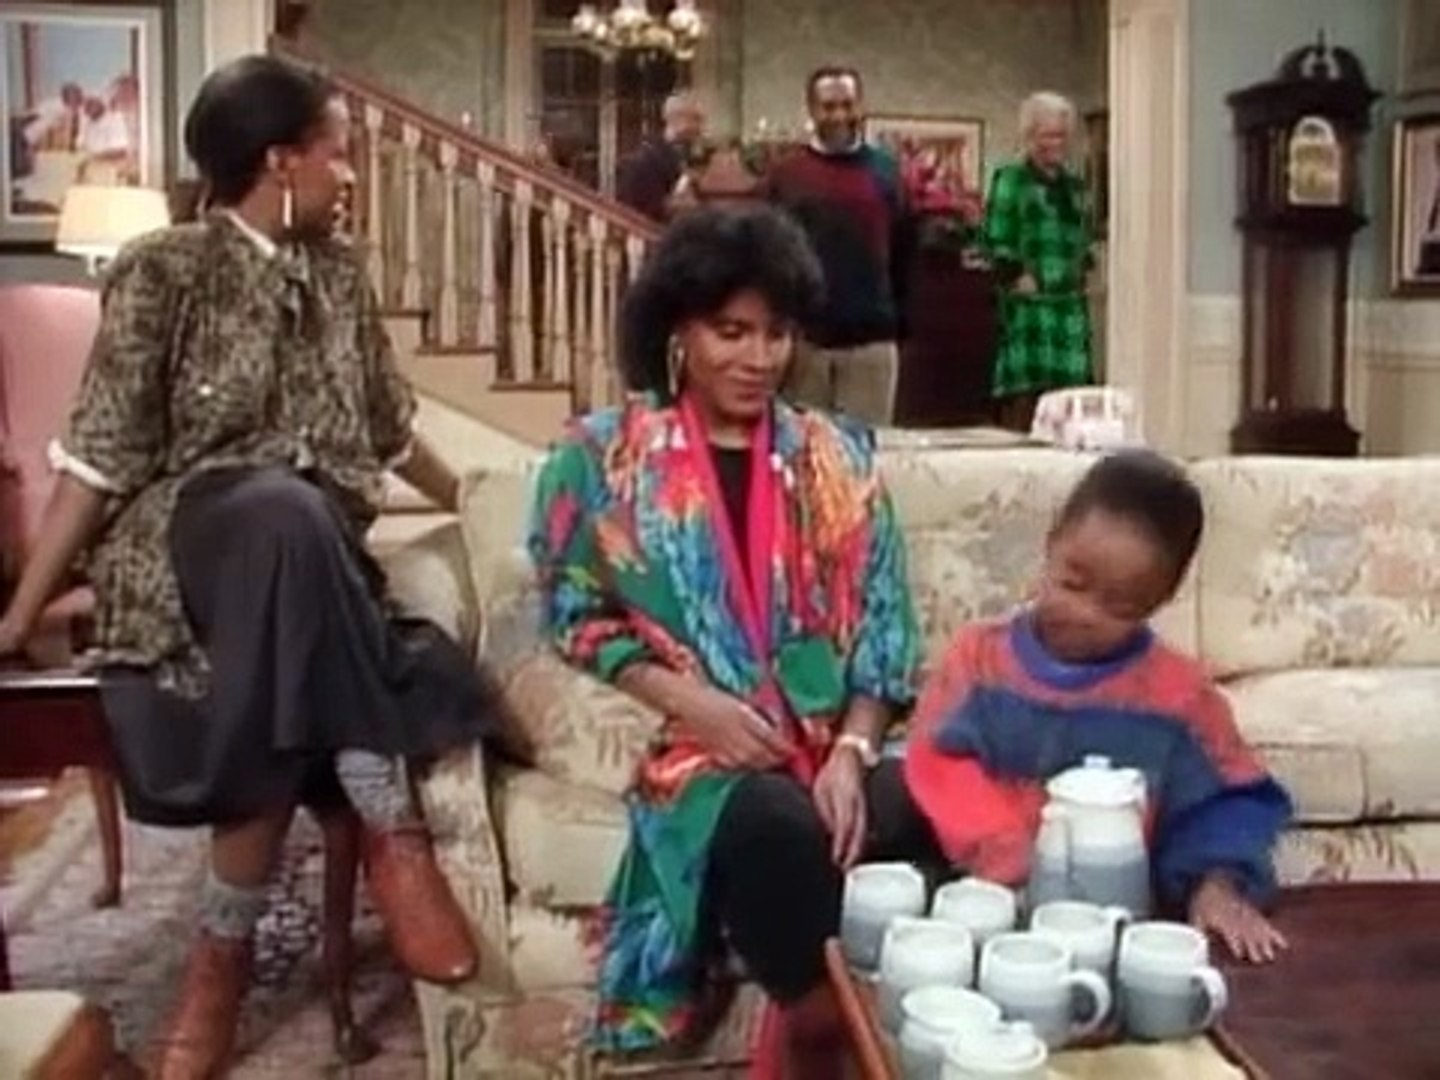 The Cosby Show S03E06 The March